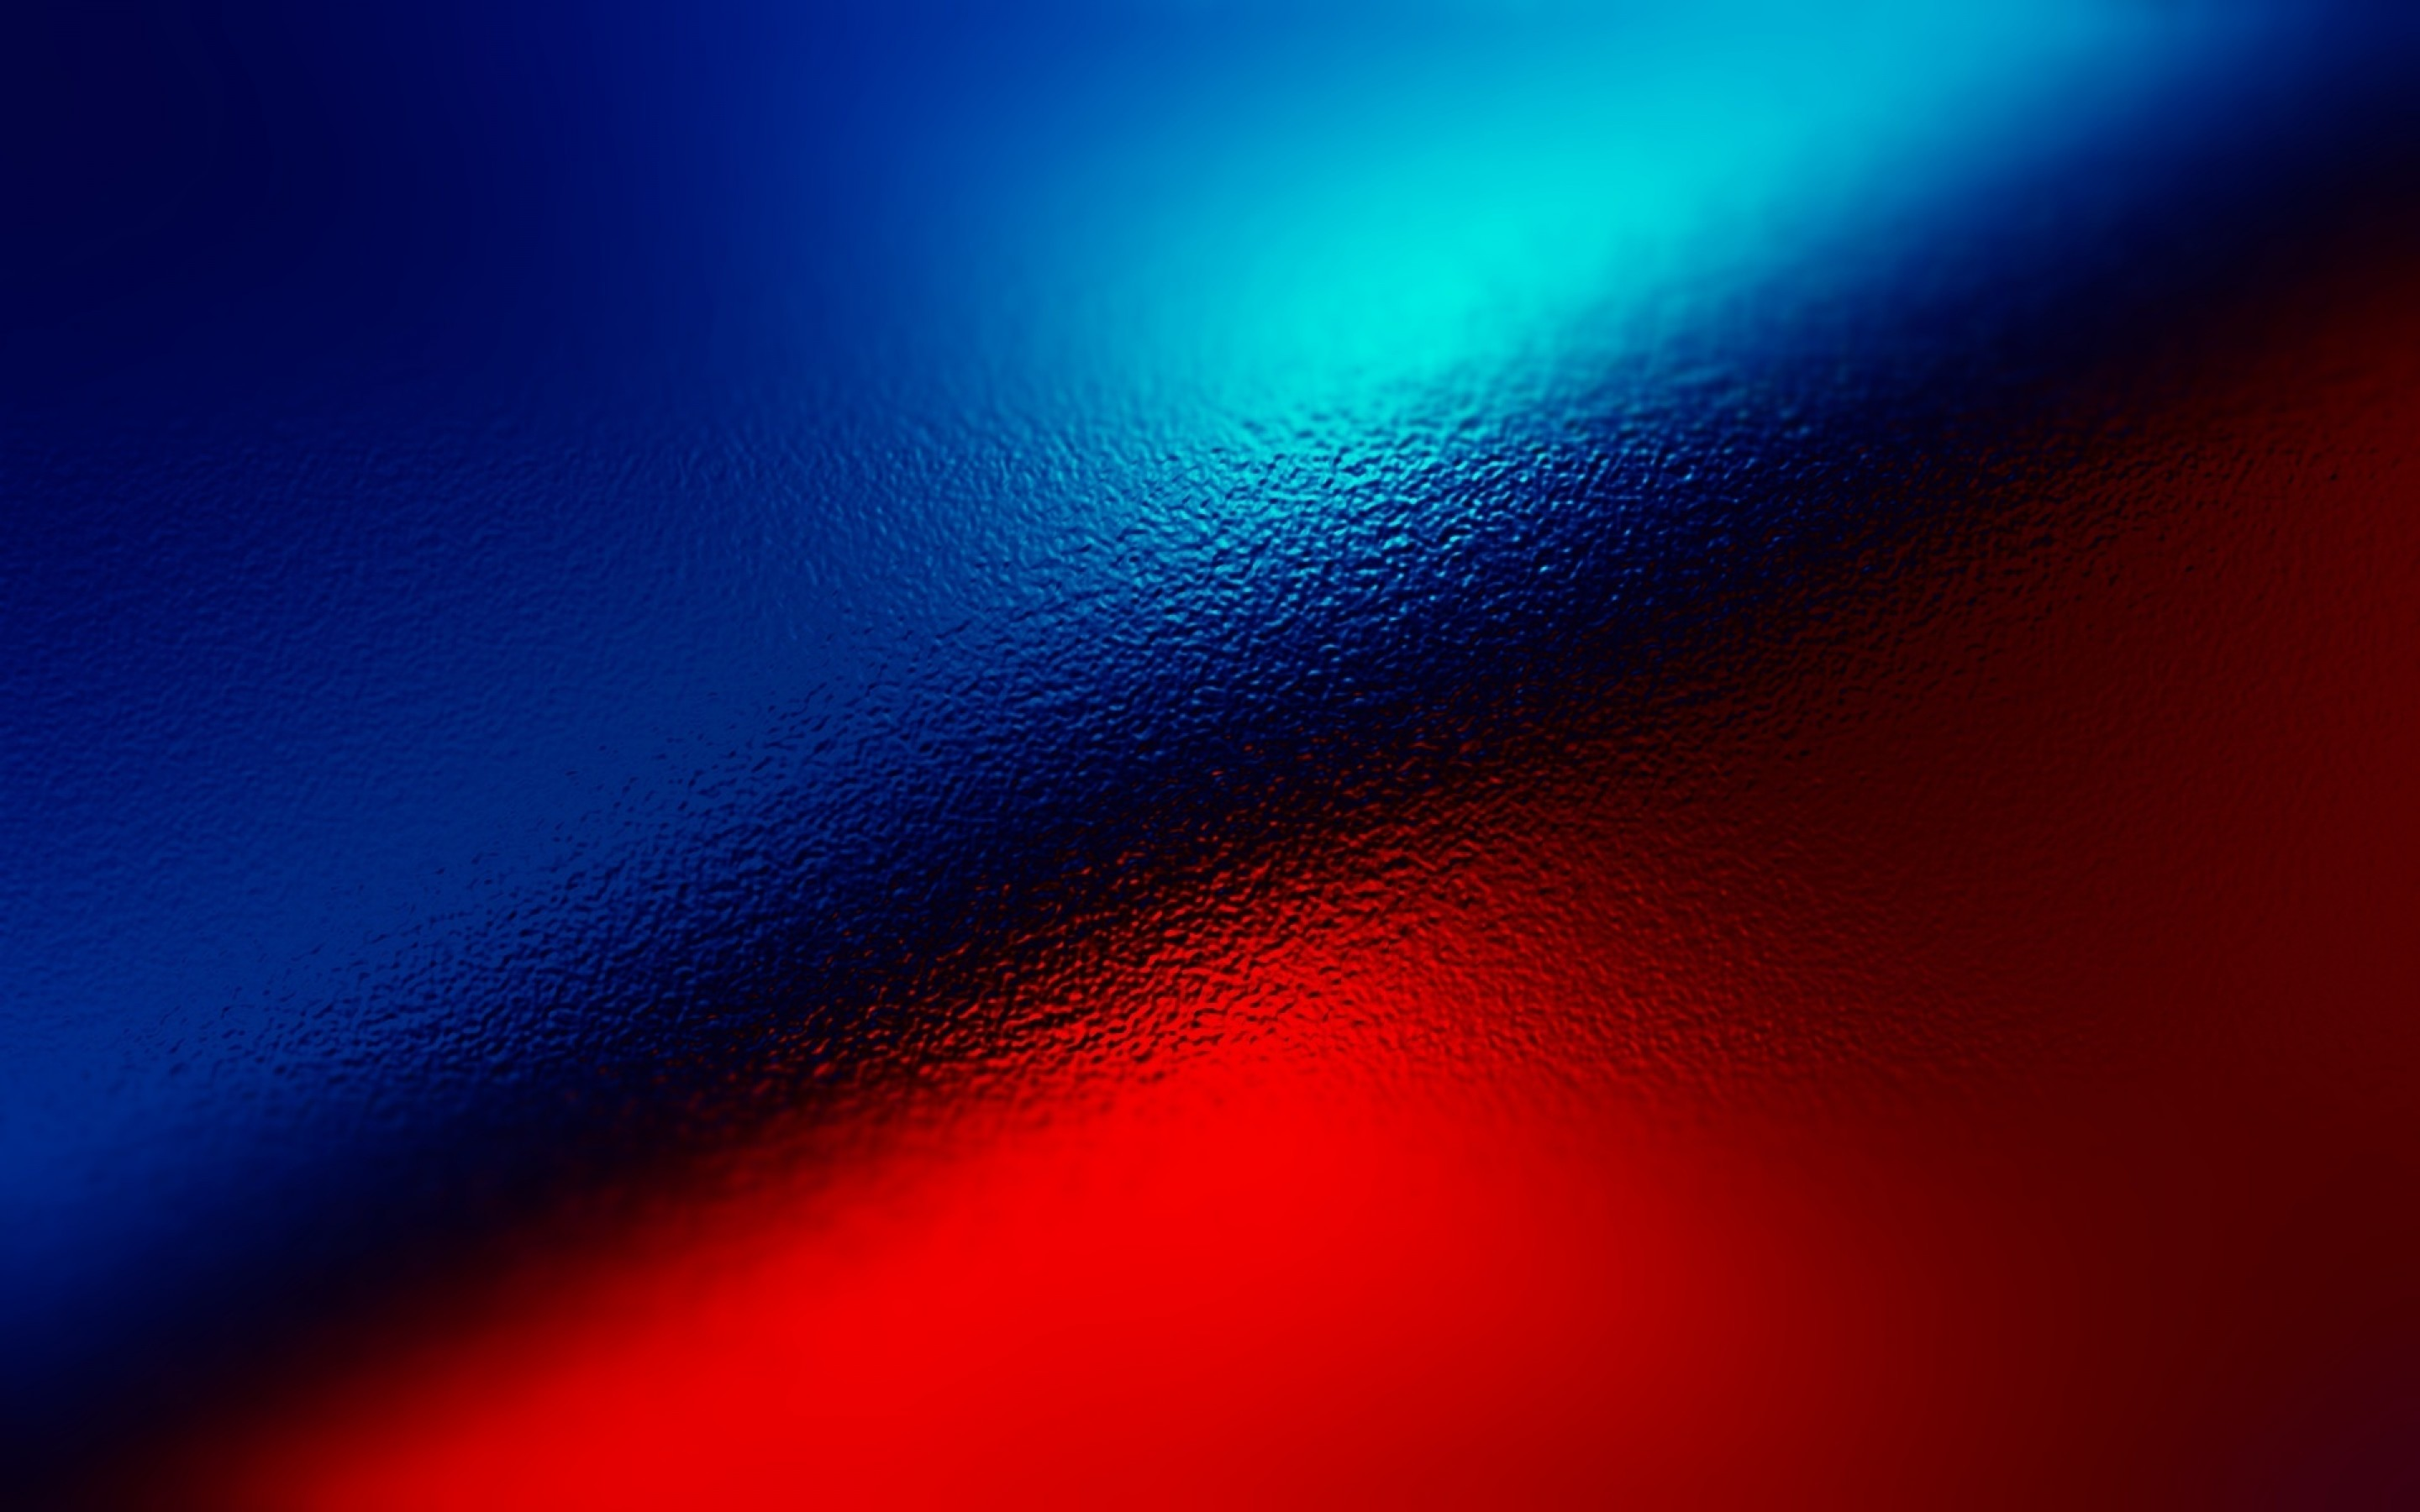 75 super hd texture wallpapers for New cool images